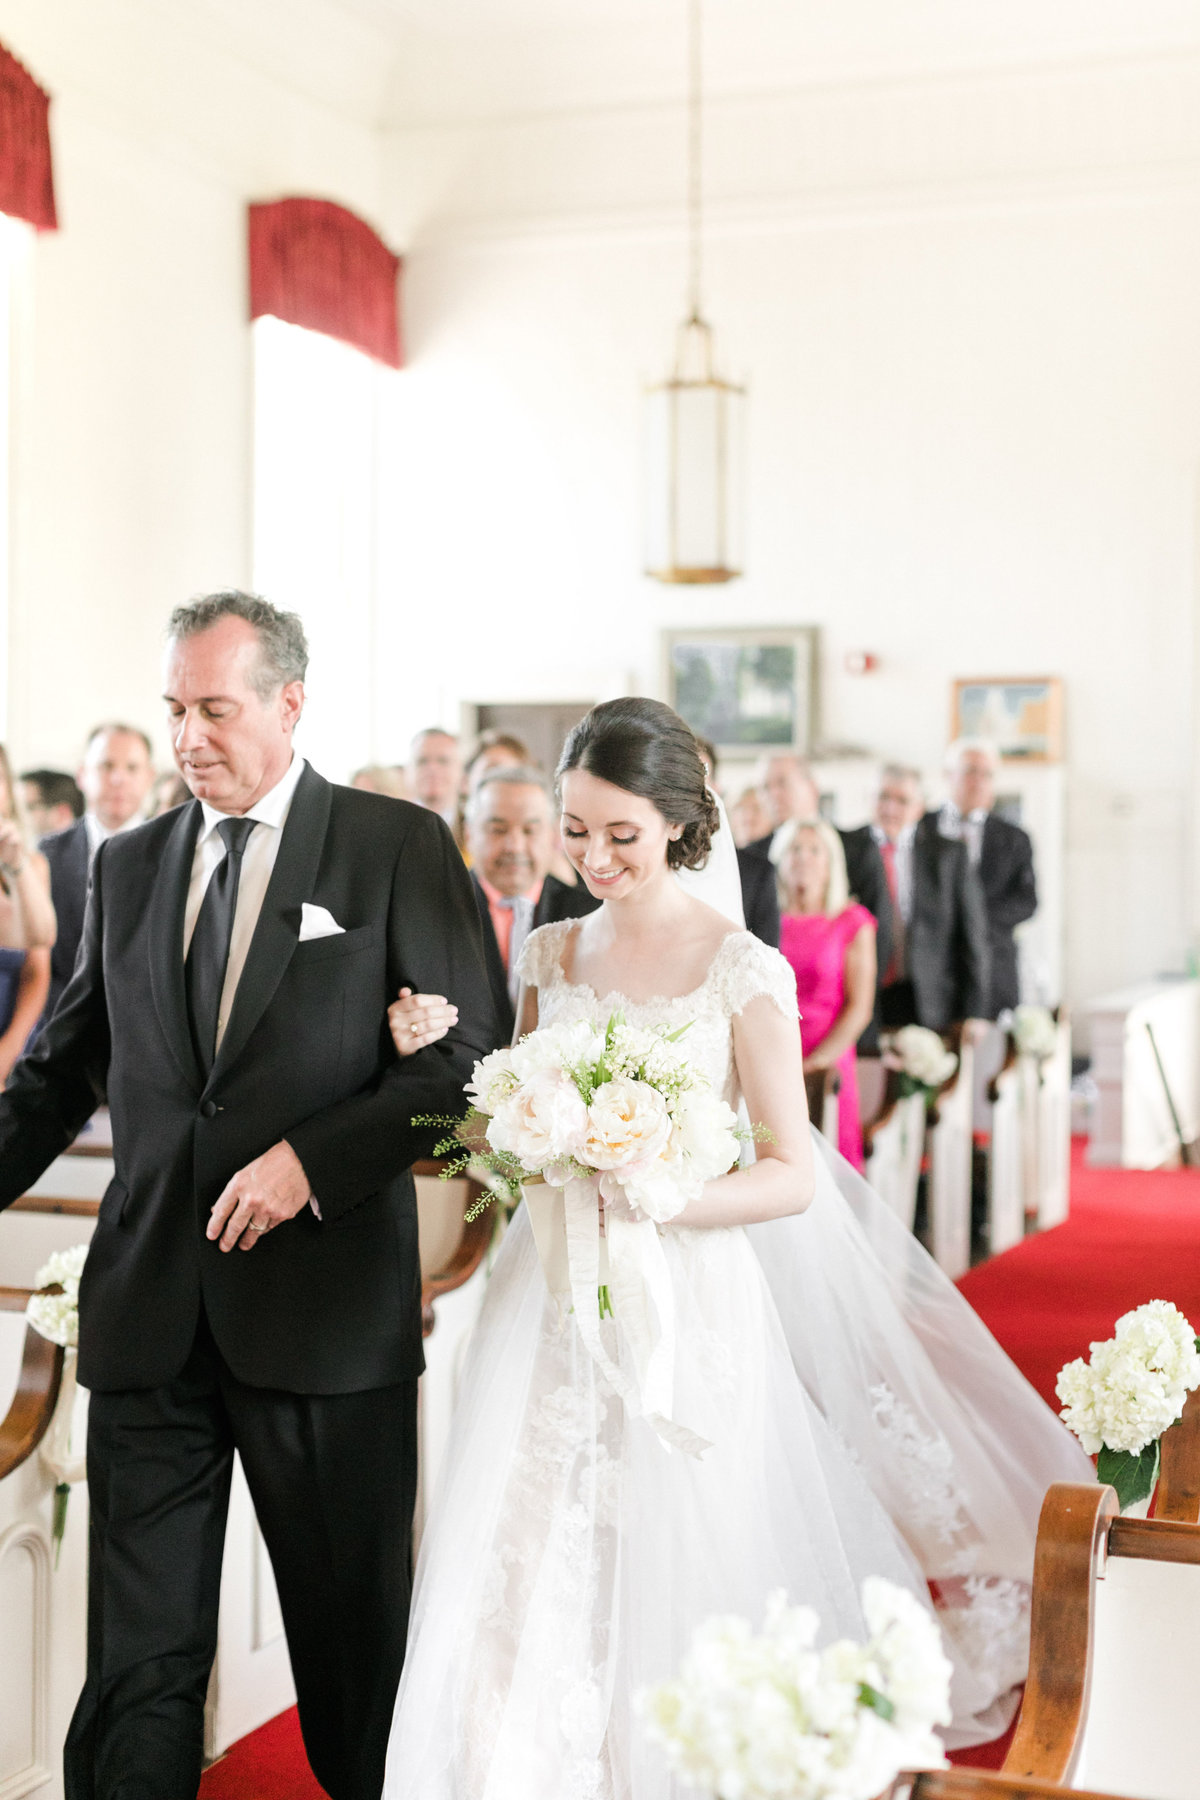 Kate & Jack_Wedding_Ceremony_1089